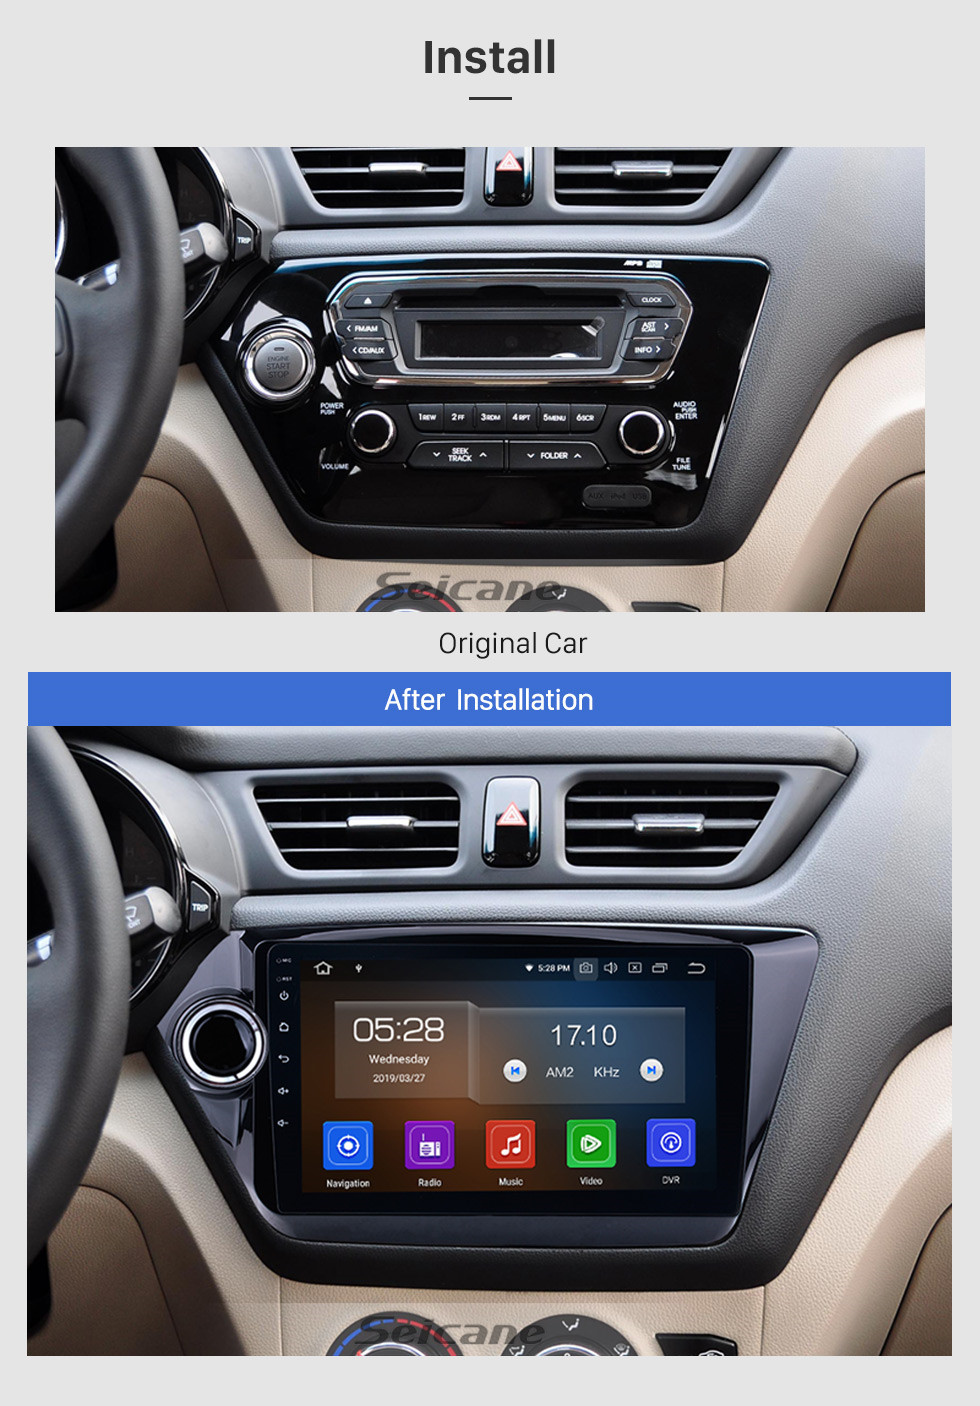 Seicane For 2011 2012 2013 2014 2015 Kia K2 RIO 9 inch Android 10.0 Car GPS Navigation System HD Touchscreen Radio AM FM Bluetooth Mirror Link support  CD DVD Player OBD2 3G WiFi